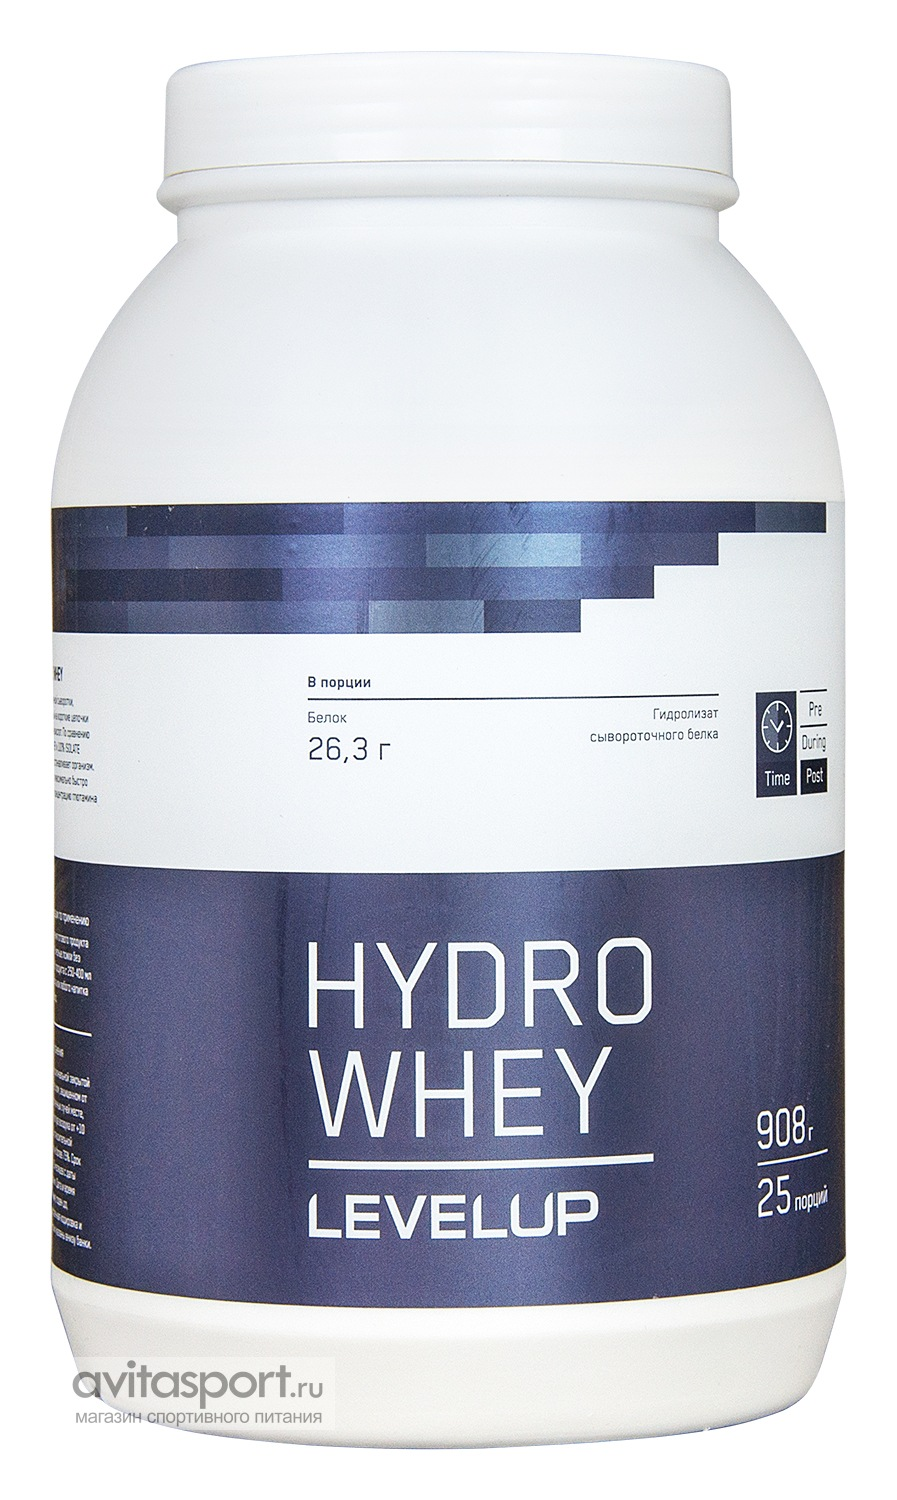 LevelUp Hydro Whey 908 г